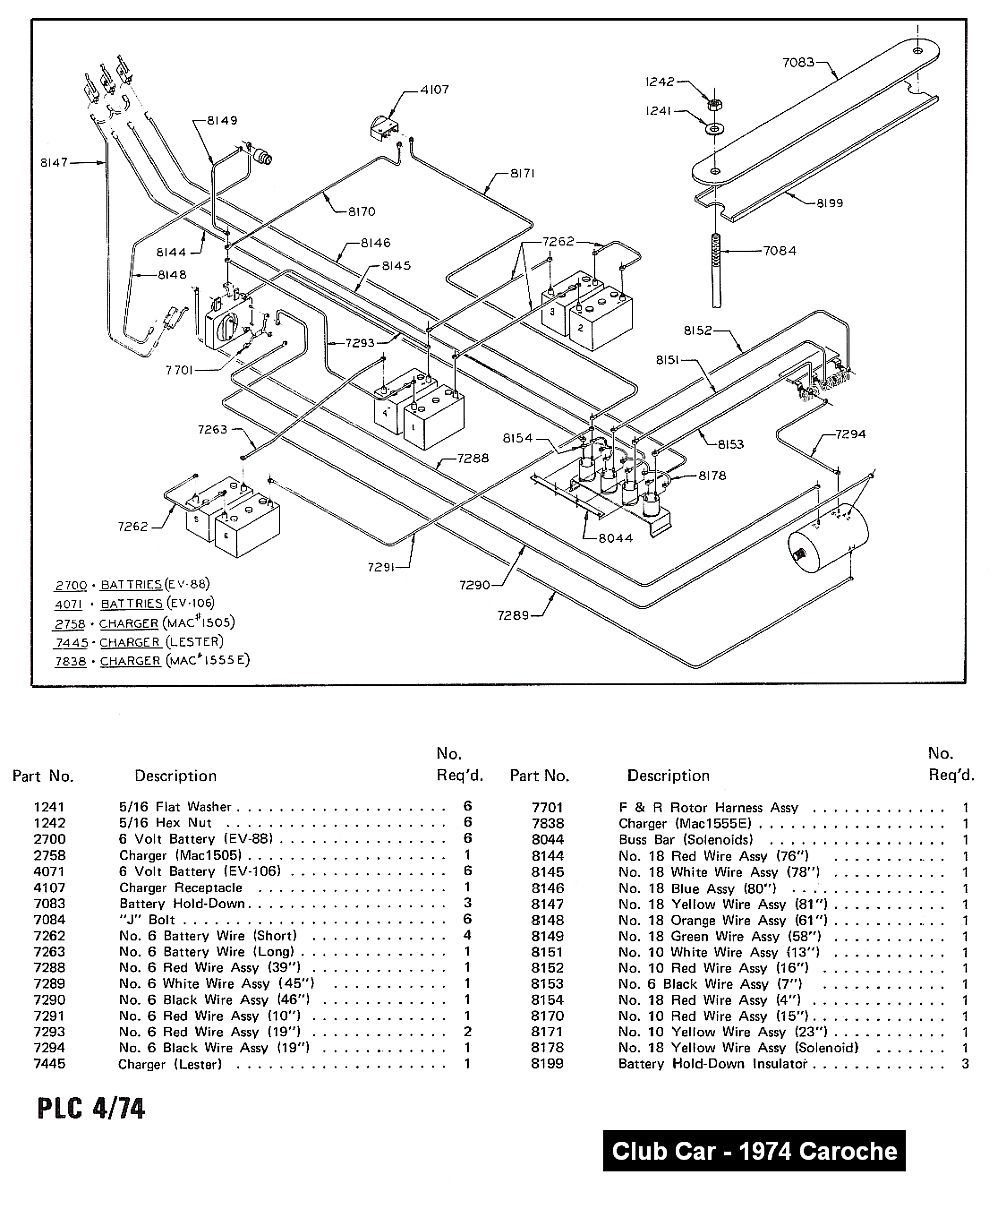 Car Wiring Diagrams : Club car wiring diagram pictures